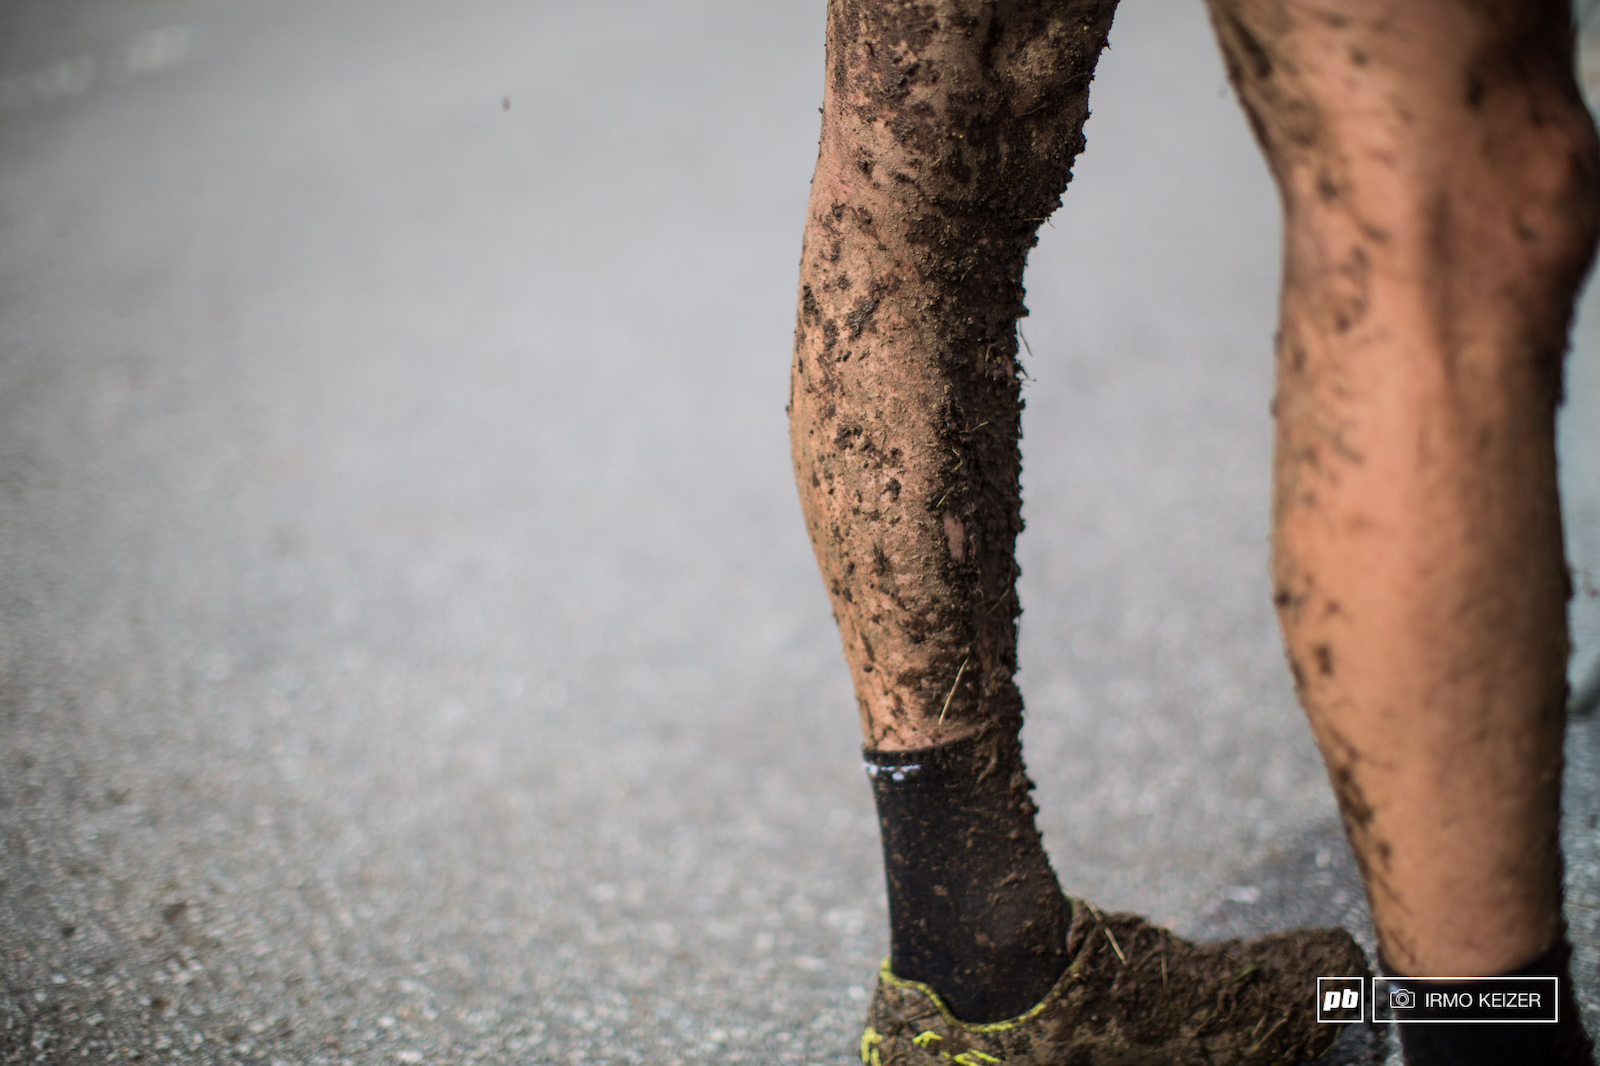 The course held up well to heavy rainfall last night although riders received their fair share of mud.